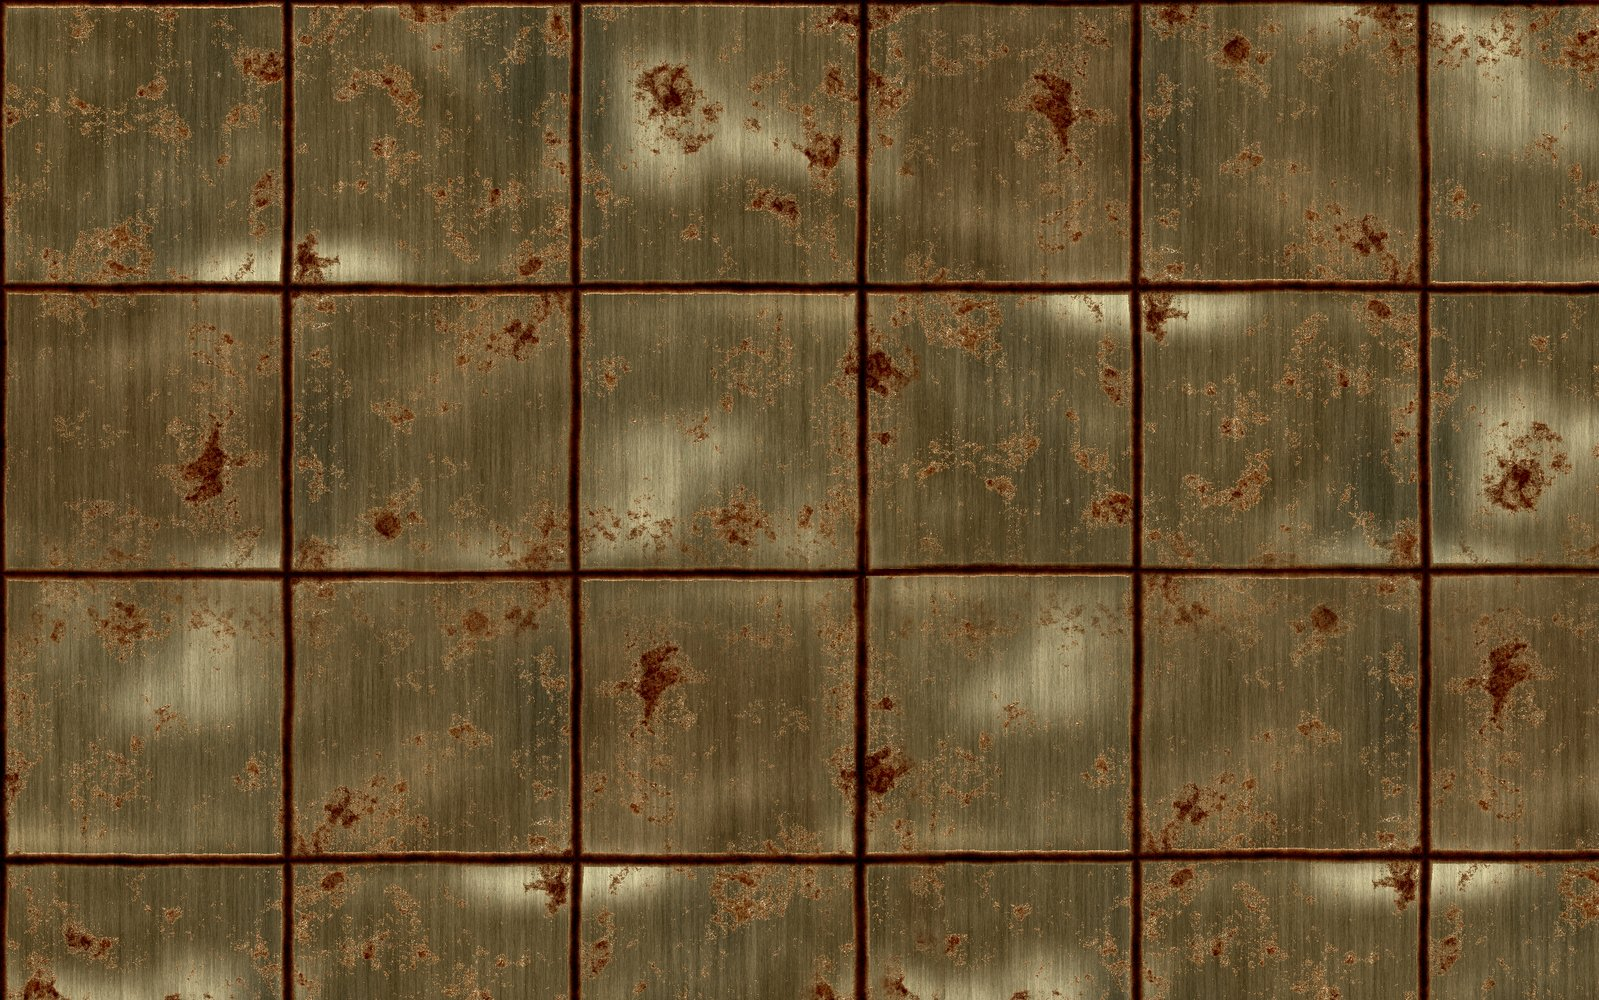 Metal Panel Texture : Free metal panel texture stock photo freeimages